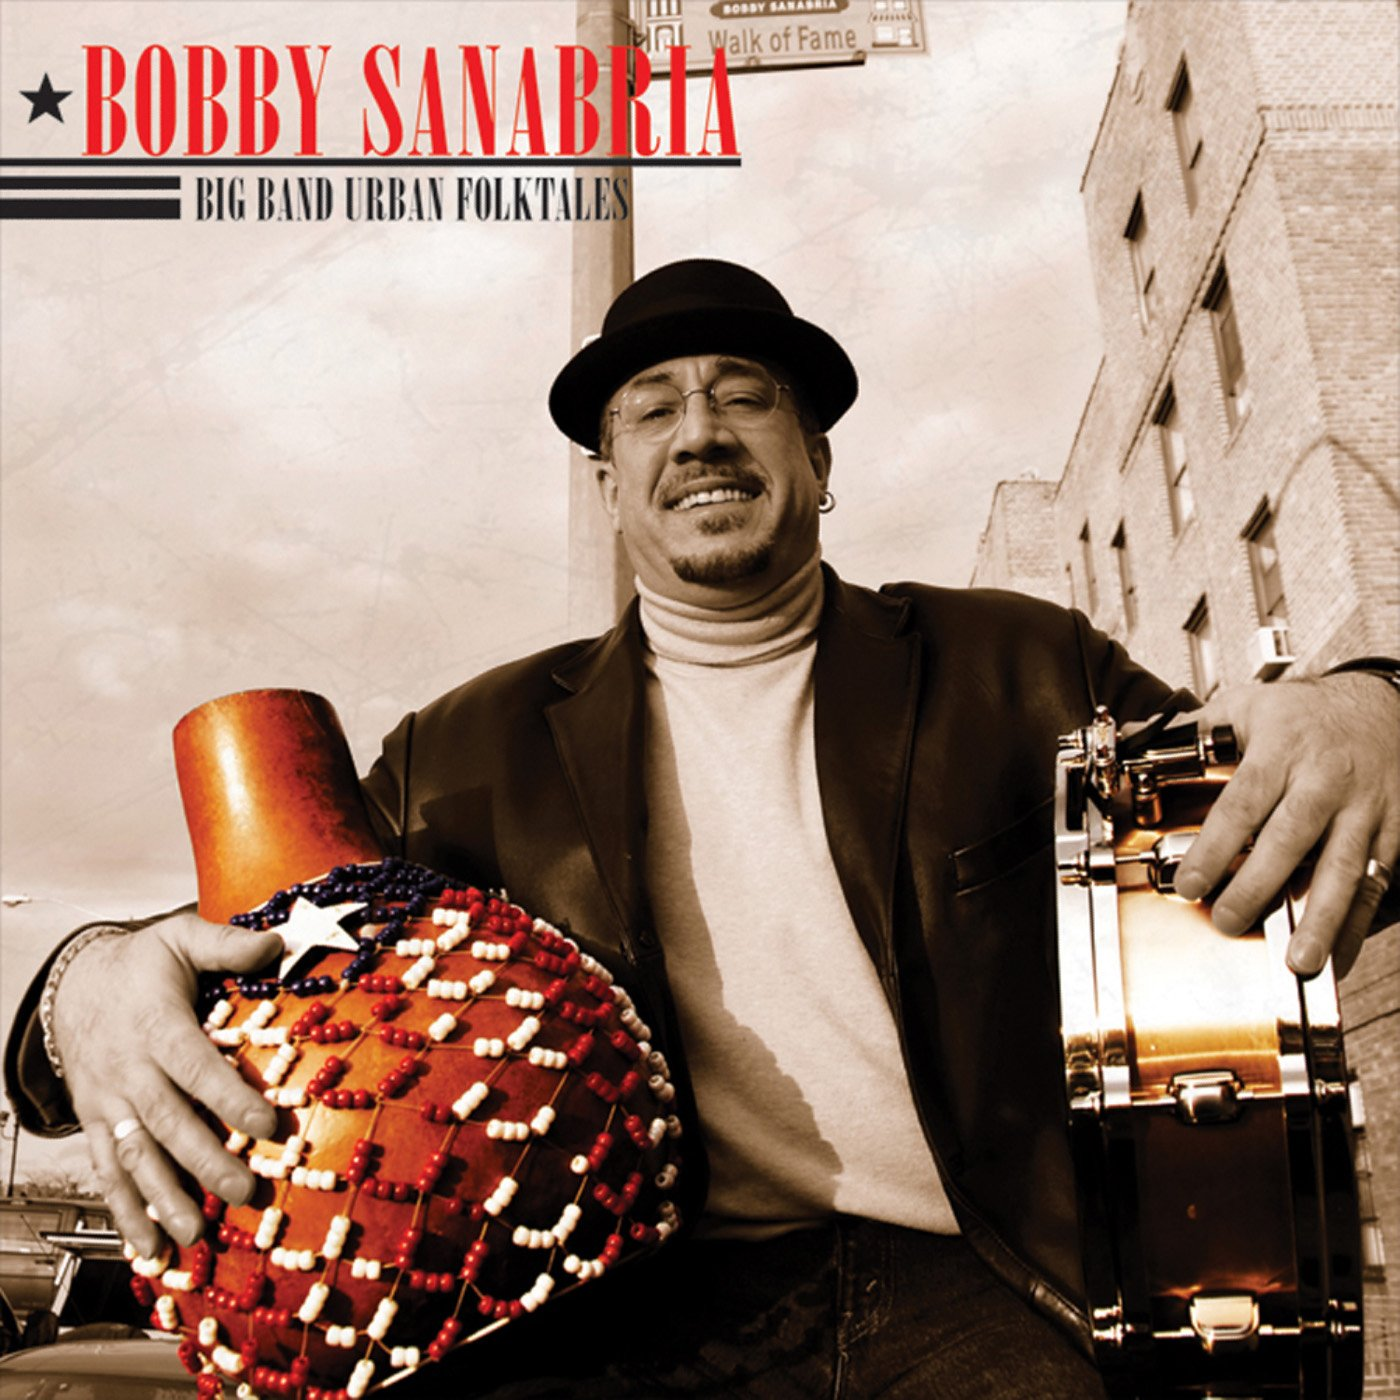 CD : Bobby Sanabria - Big Band Urban Folktales (CD)